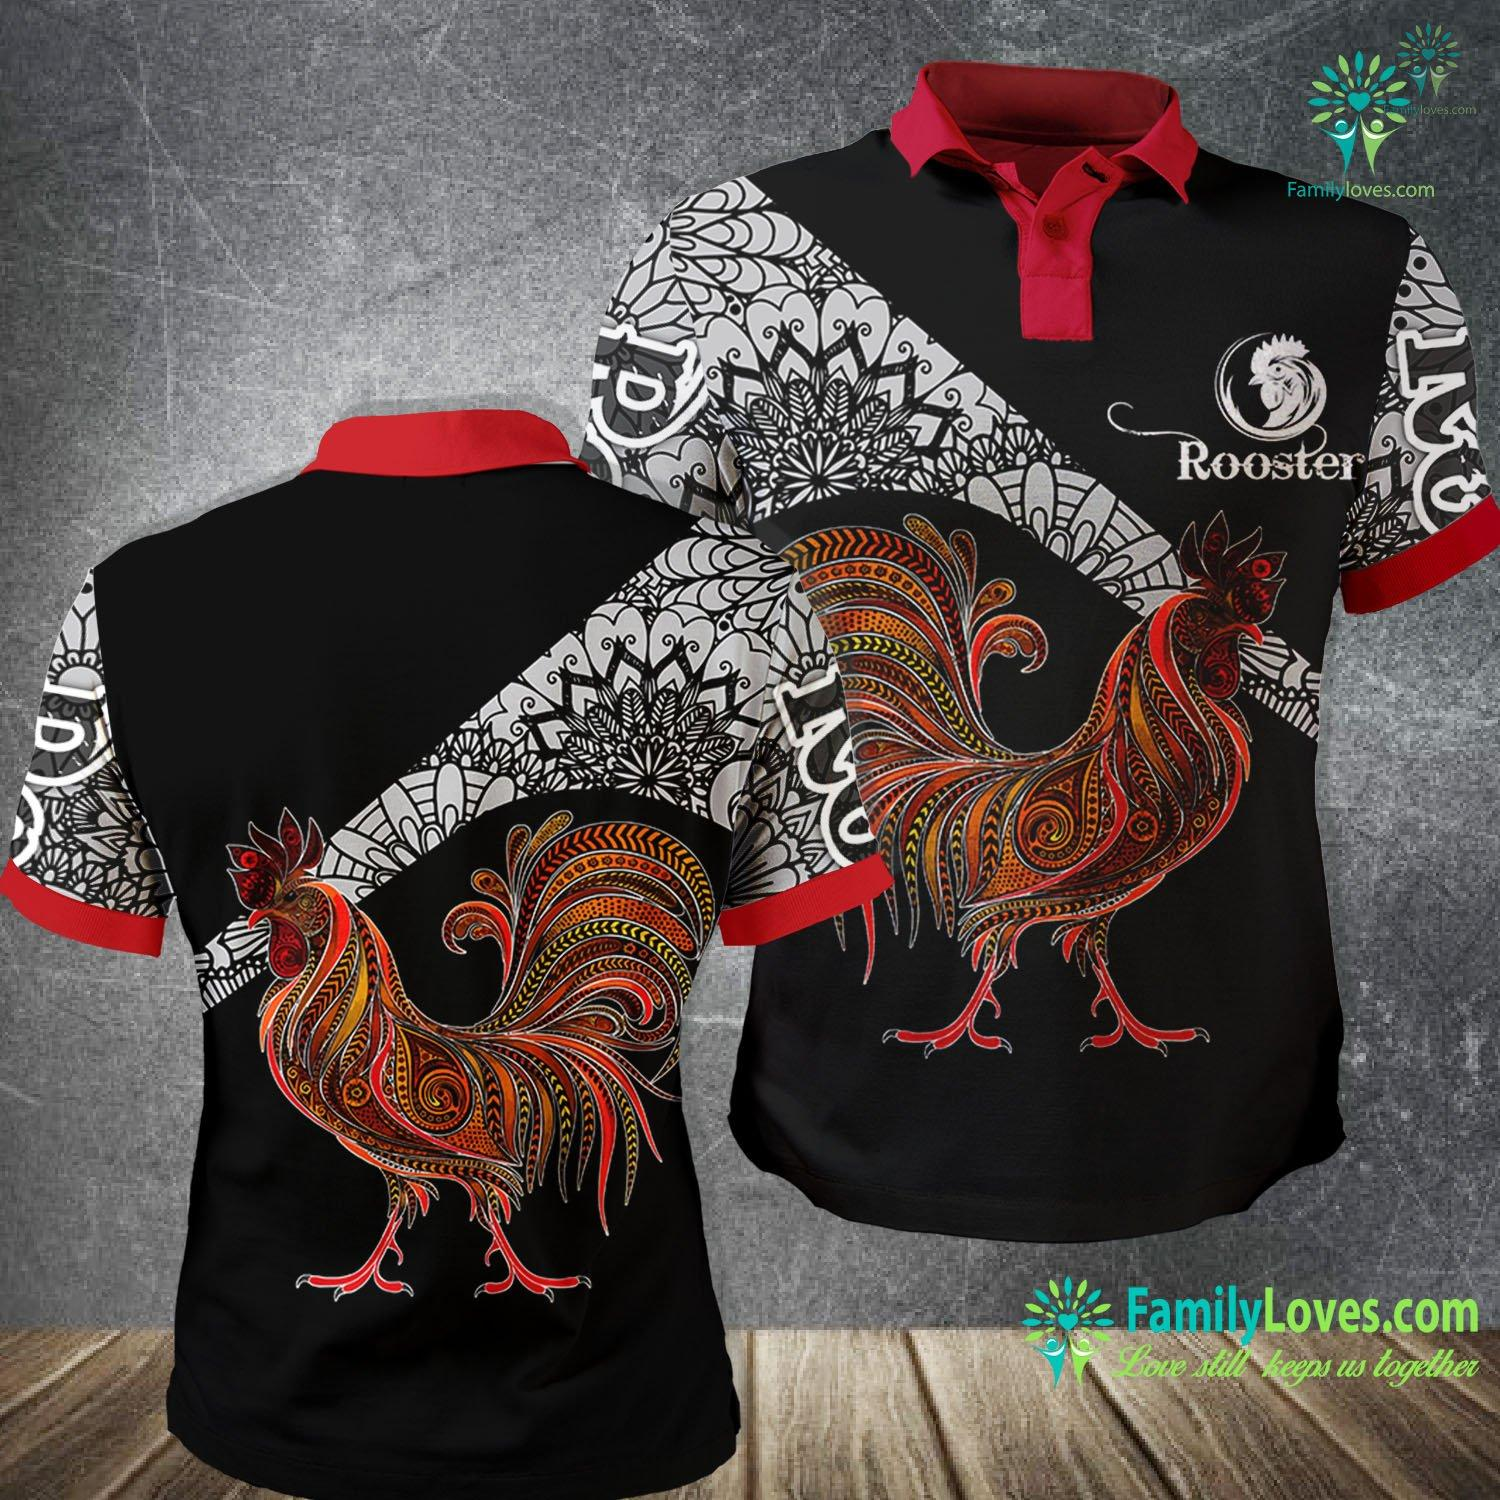 Rooster 3D All Over Printed Polo Shirt Familyloves.com